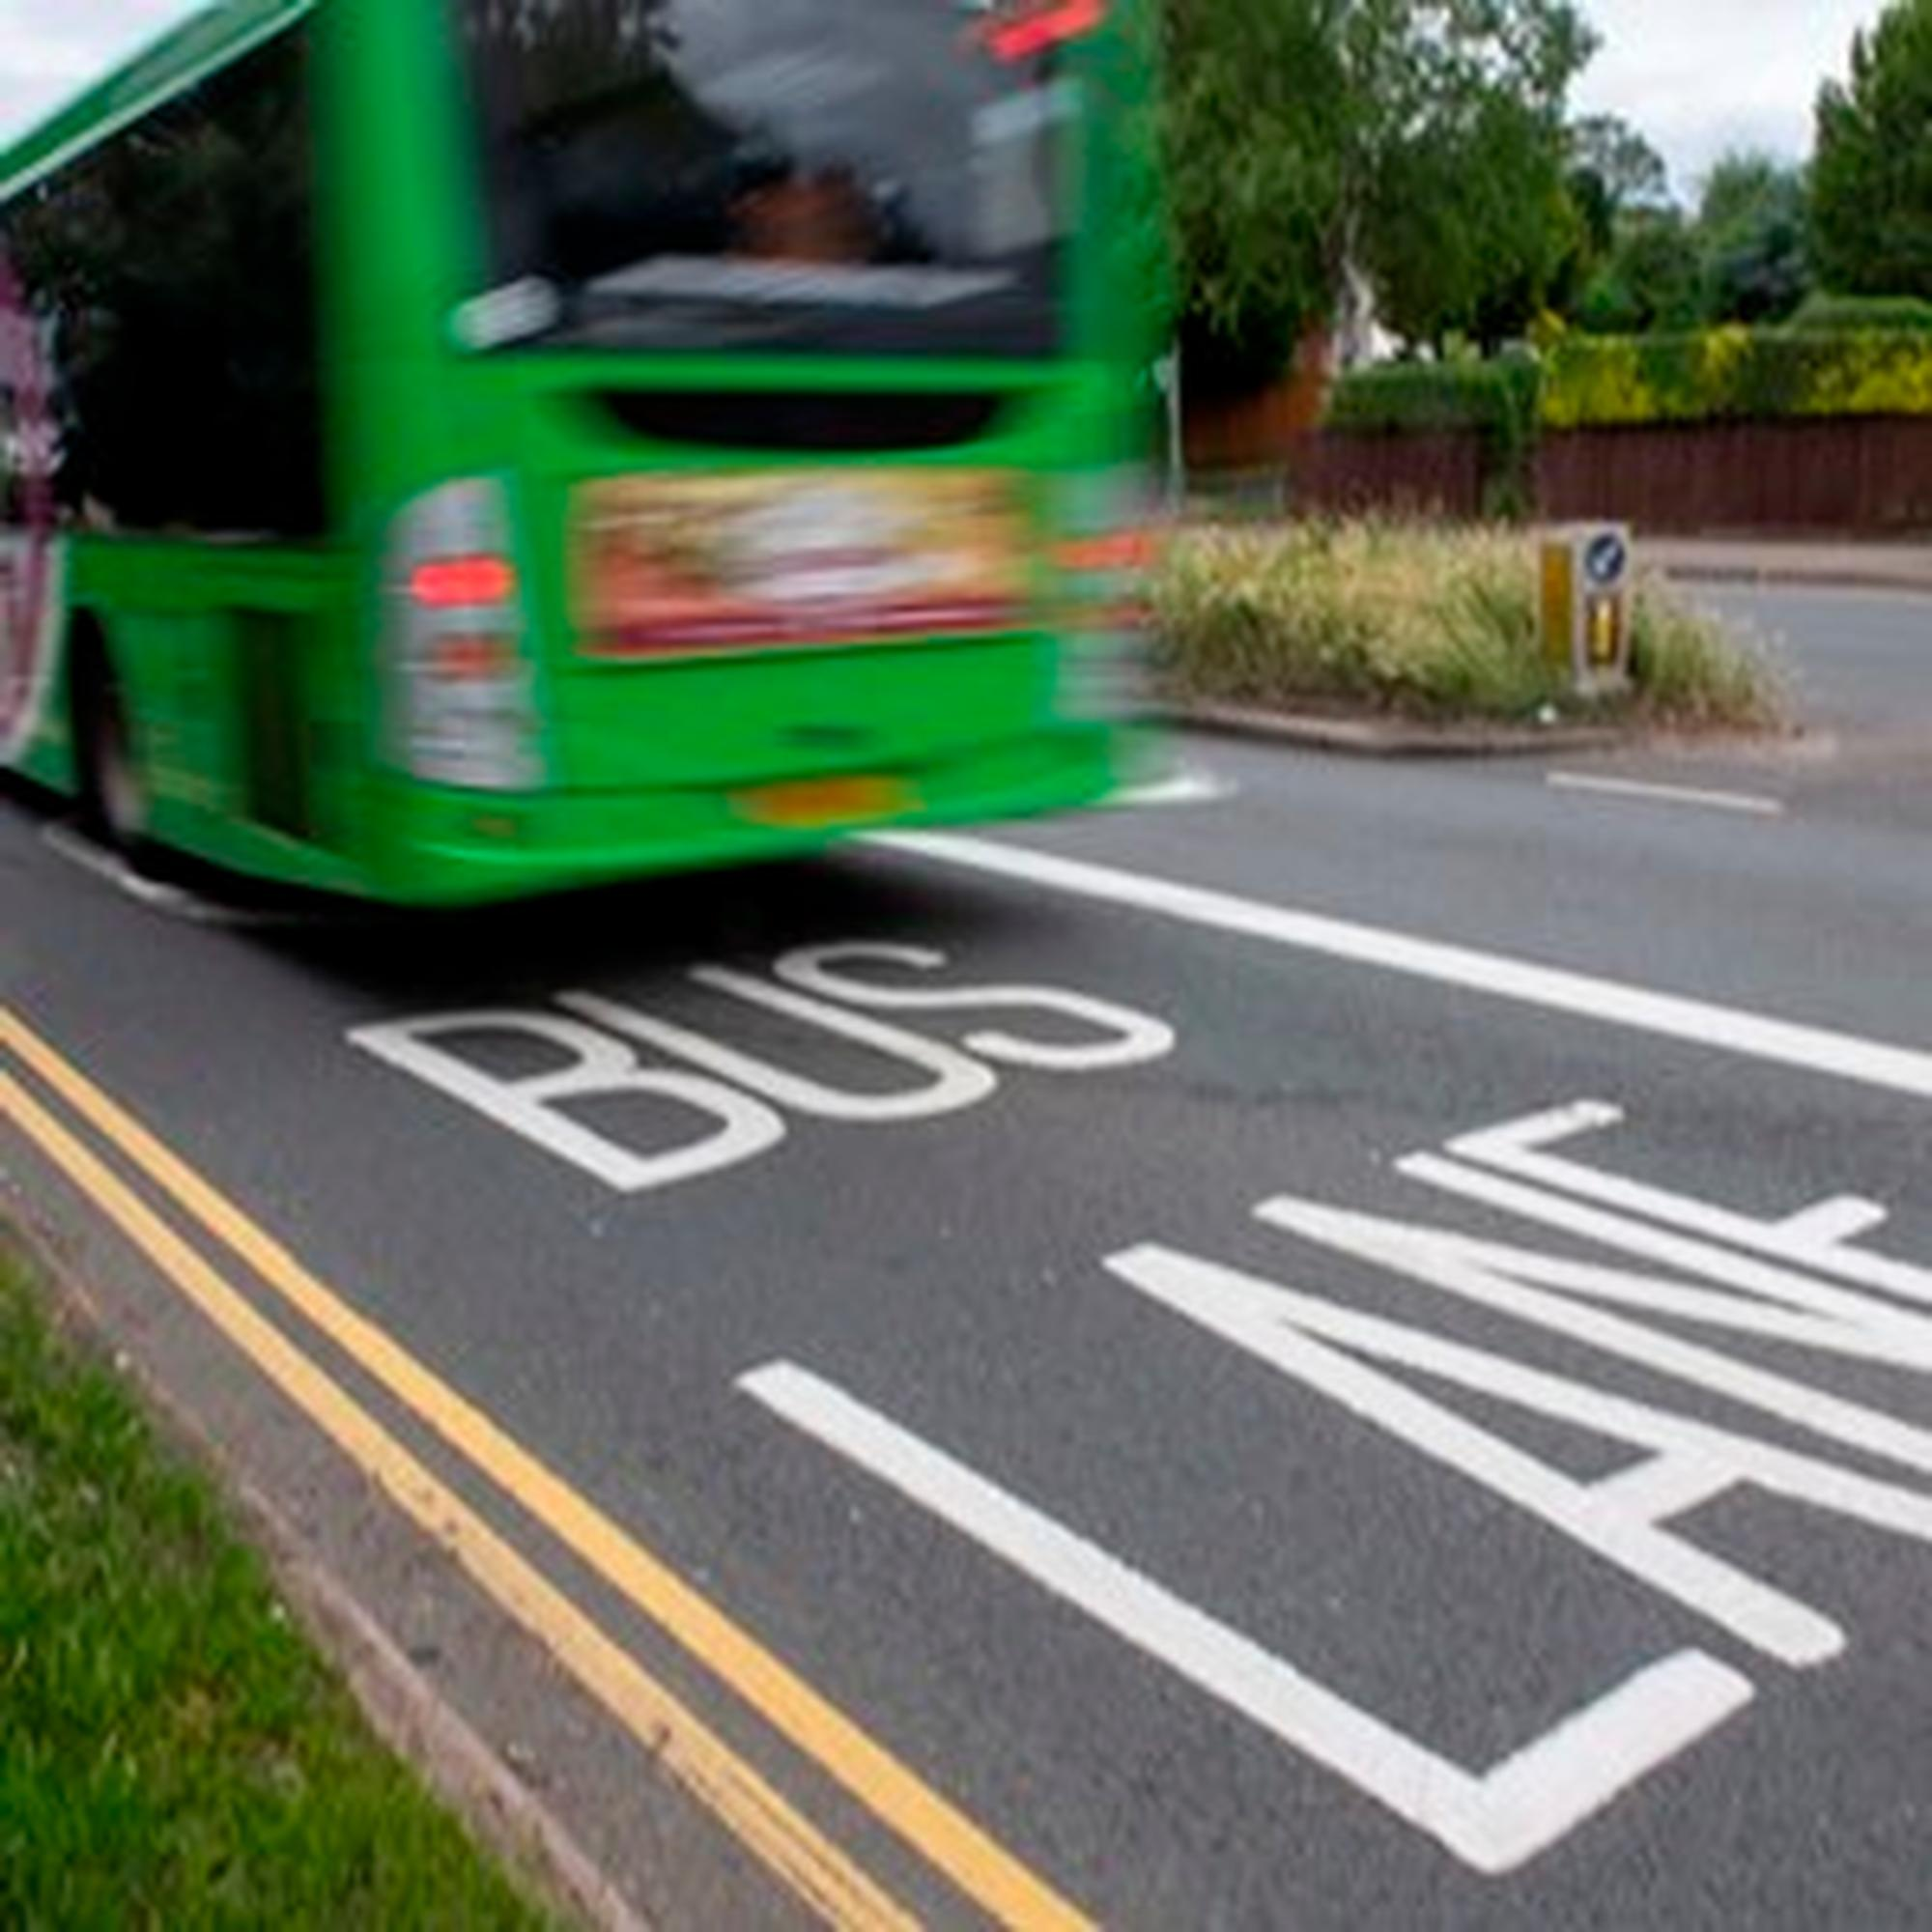 A bus lane in Leicester